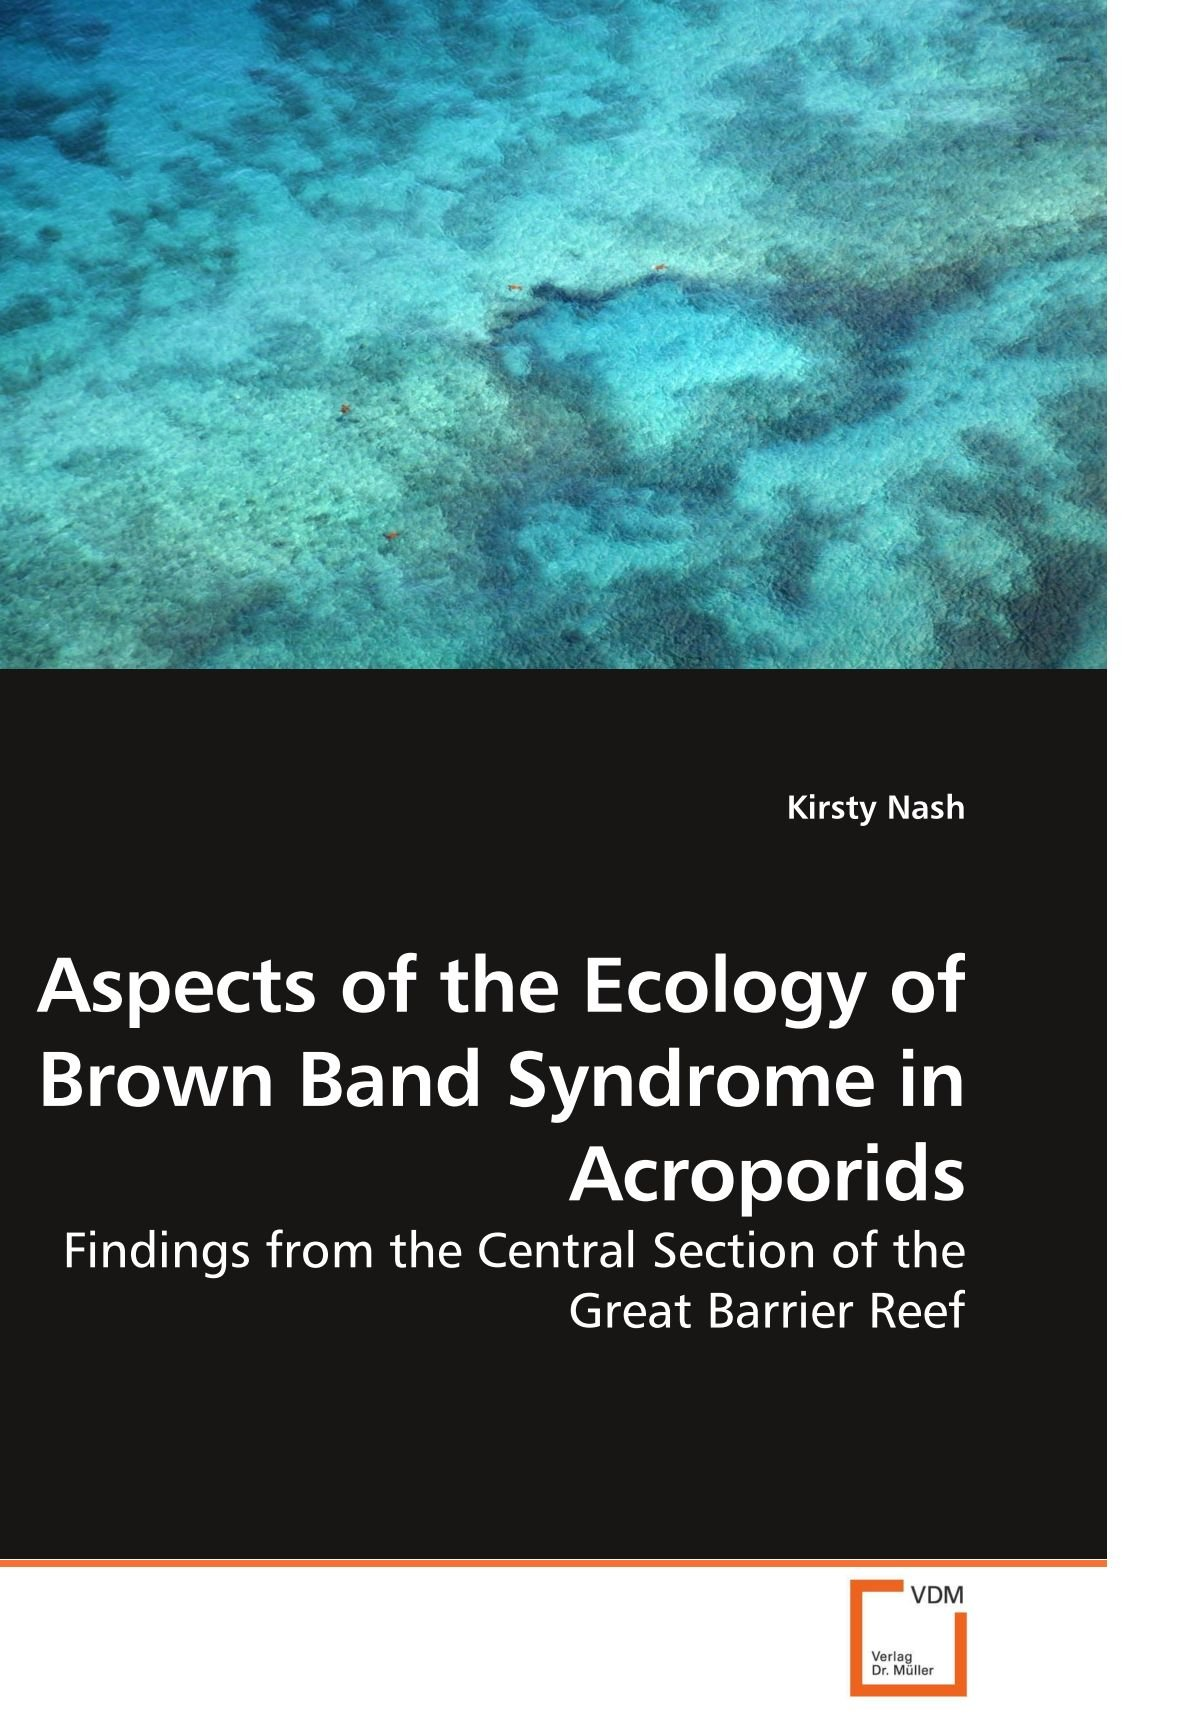 Download Aspects of the Ecology of Brown Band Syndrome in Acroporids: Findings from the Central Section of the Great Barrier Reef ebook